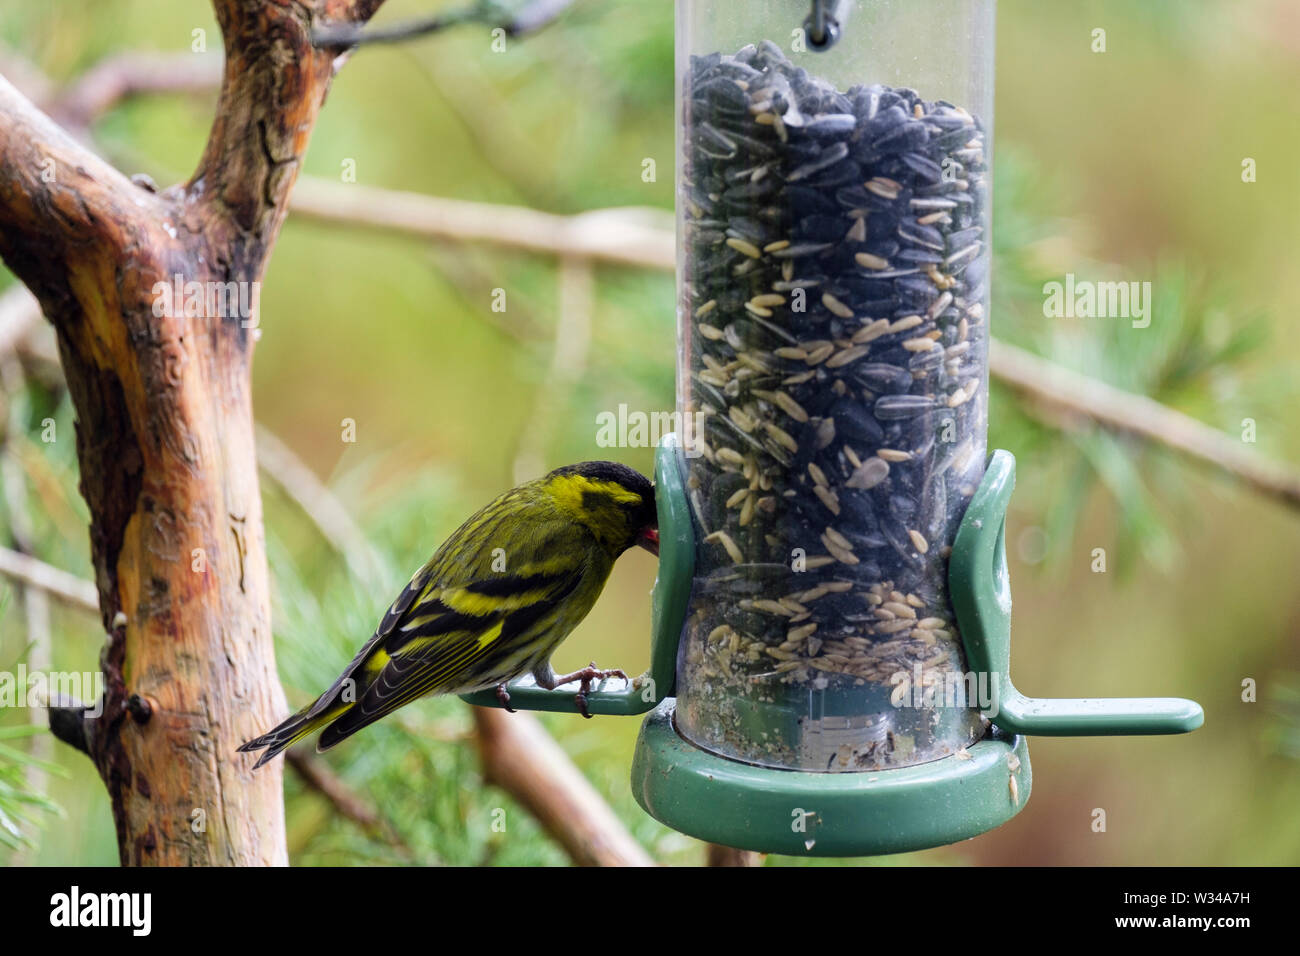 A male Siskin (Carduelis spinus) finch feeding on a garden bird seed feeder in a pine forest. Scotland, UK, Britain - Stock Image